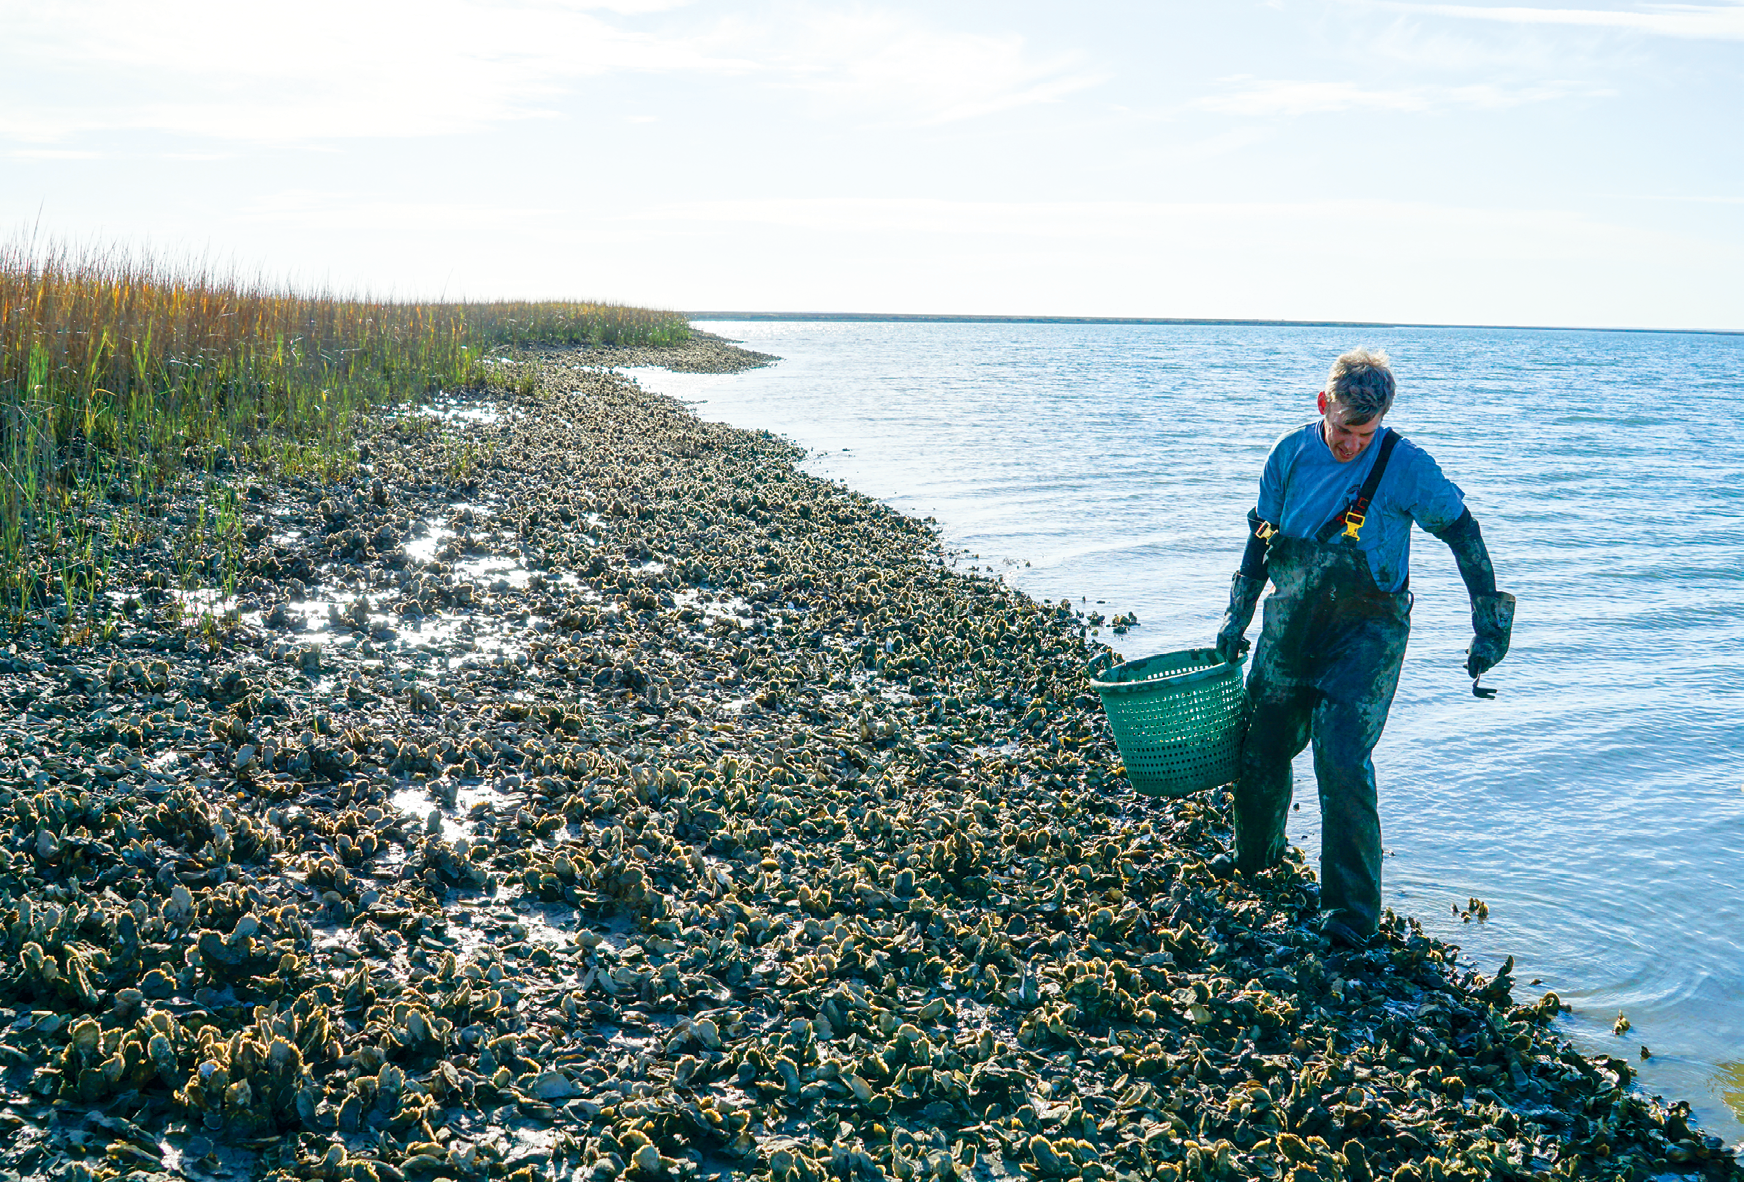 In the Cape Romain National Wildlife Refuge, Jeff Spahr of Charleston Oyster Company cultivates his oyster beds within 950 acres of leased marshland just off Bulls Bay. Through careful selection, his beds are thriving (top right and bottom right). Each day the clusters reappear and disappear with falling and rising tides.<br />